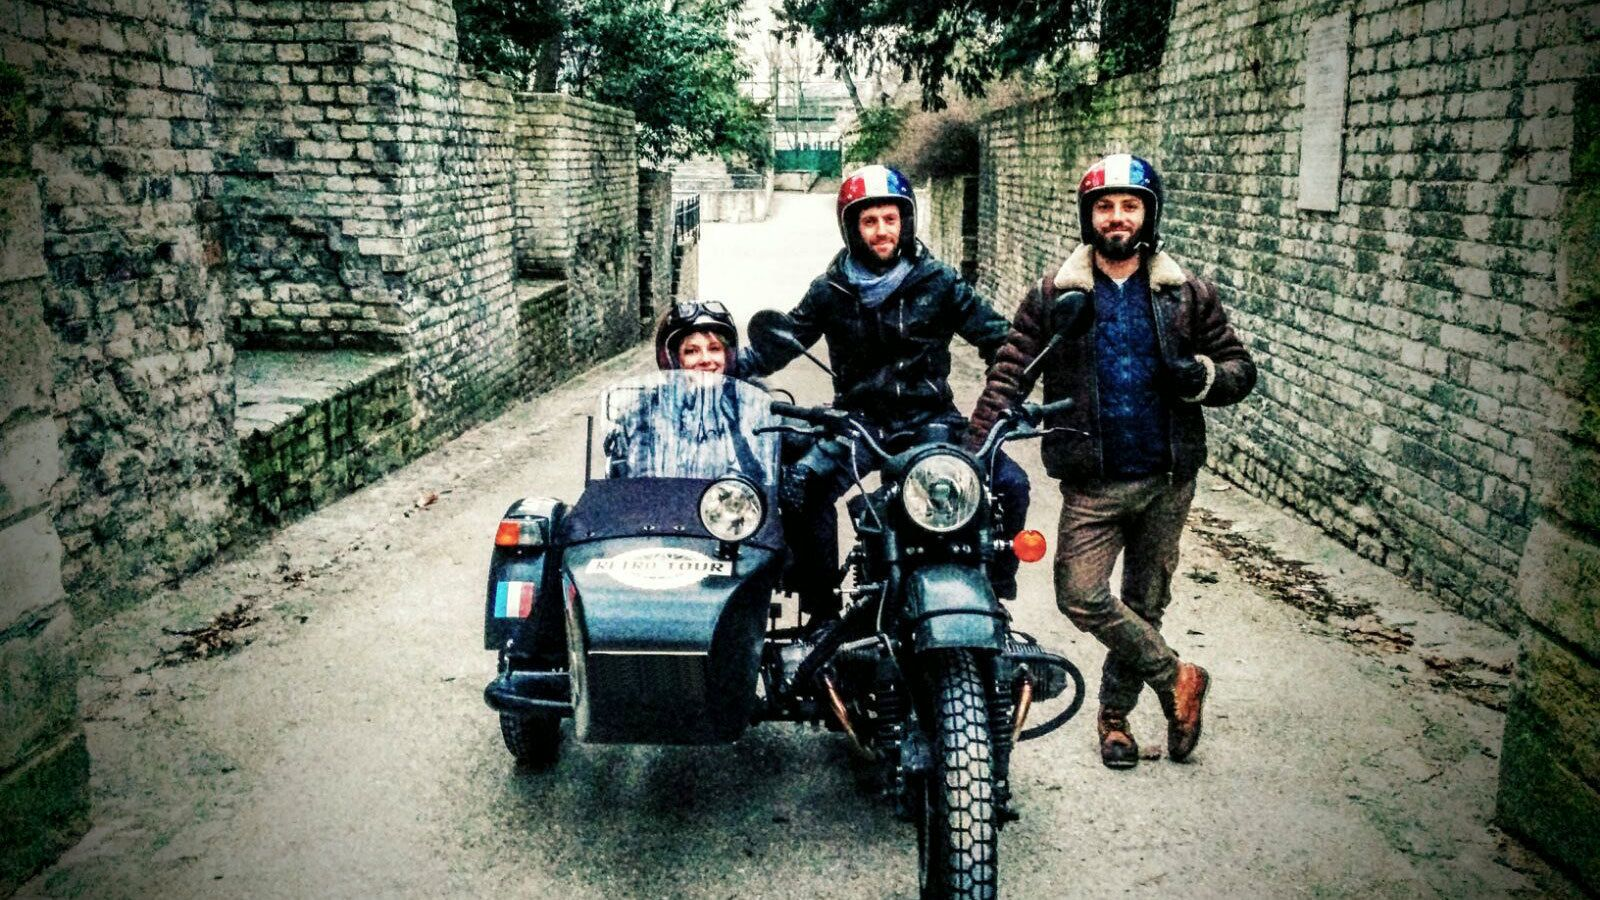 Group with a motorcycle and sidecar on a narrow street in Paris